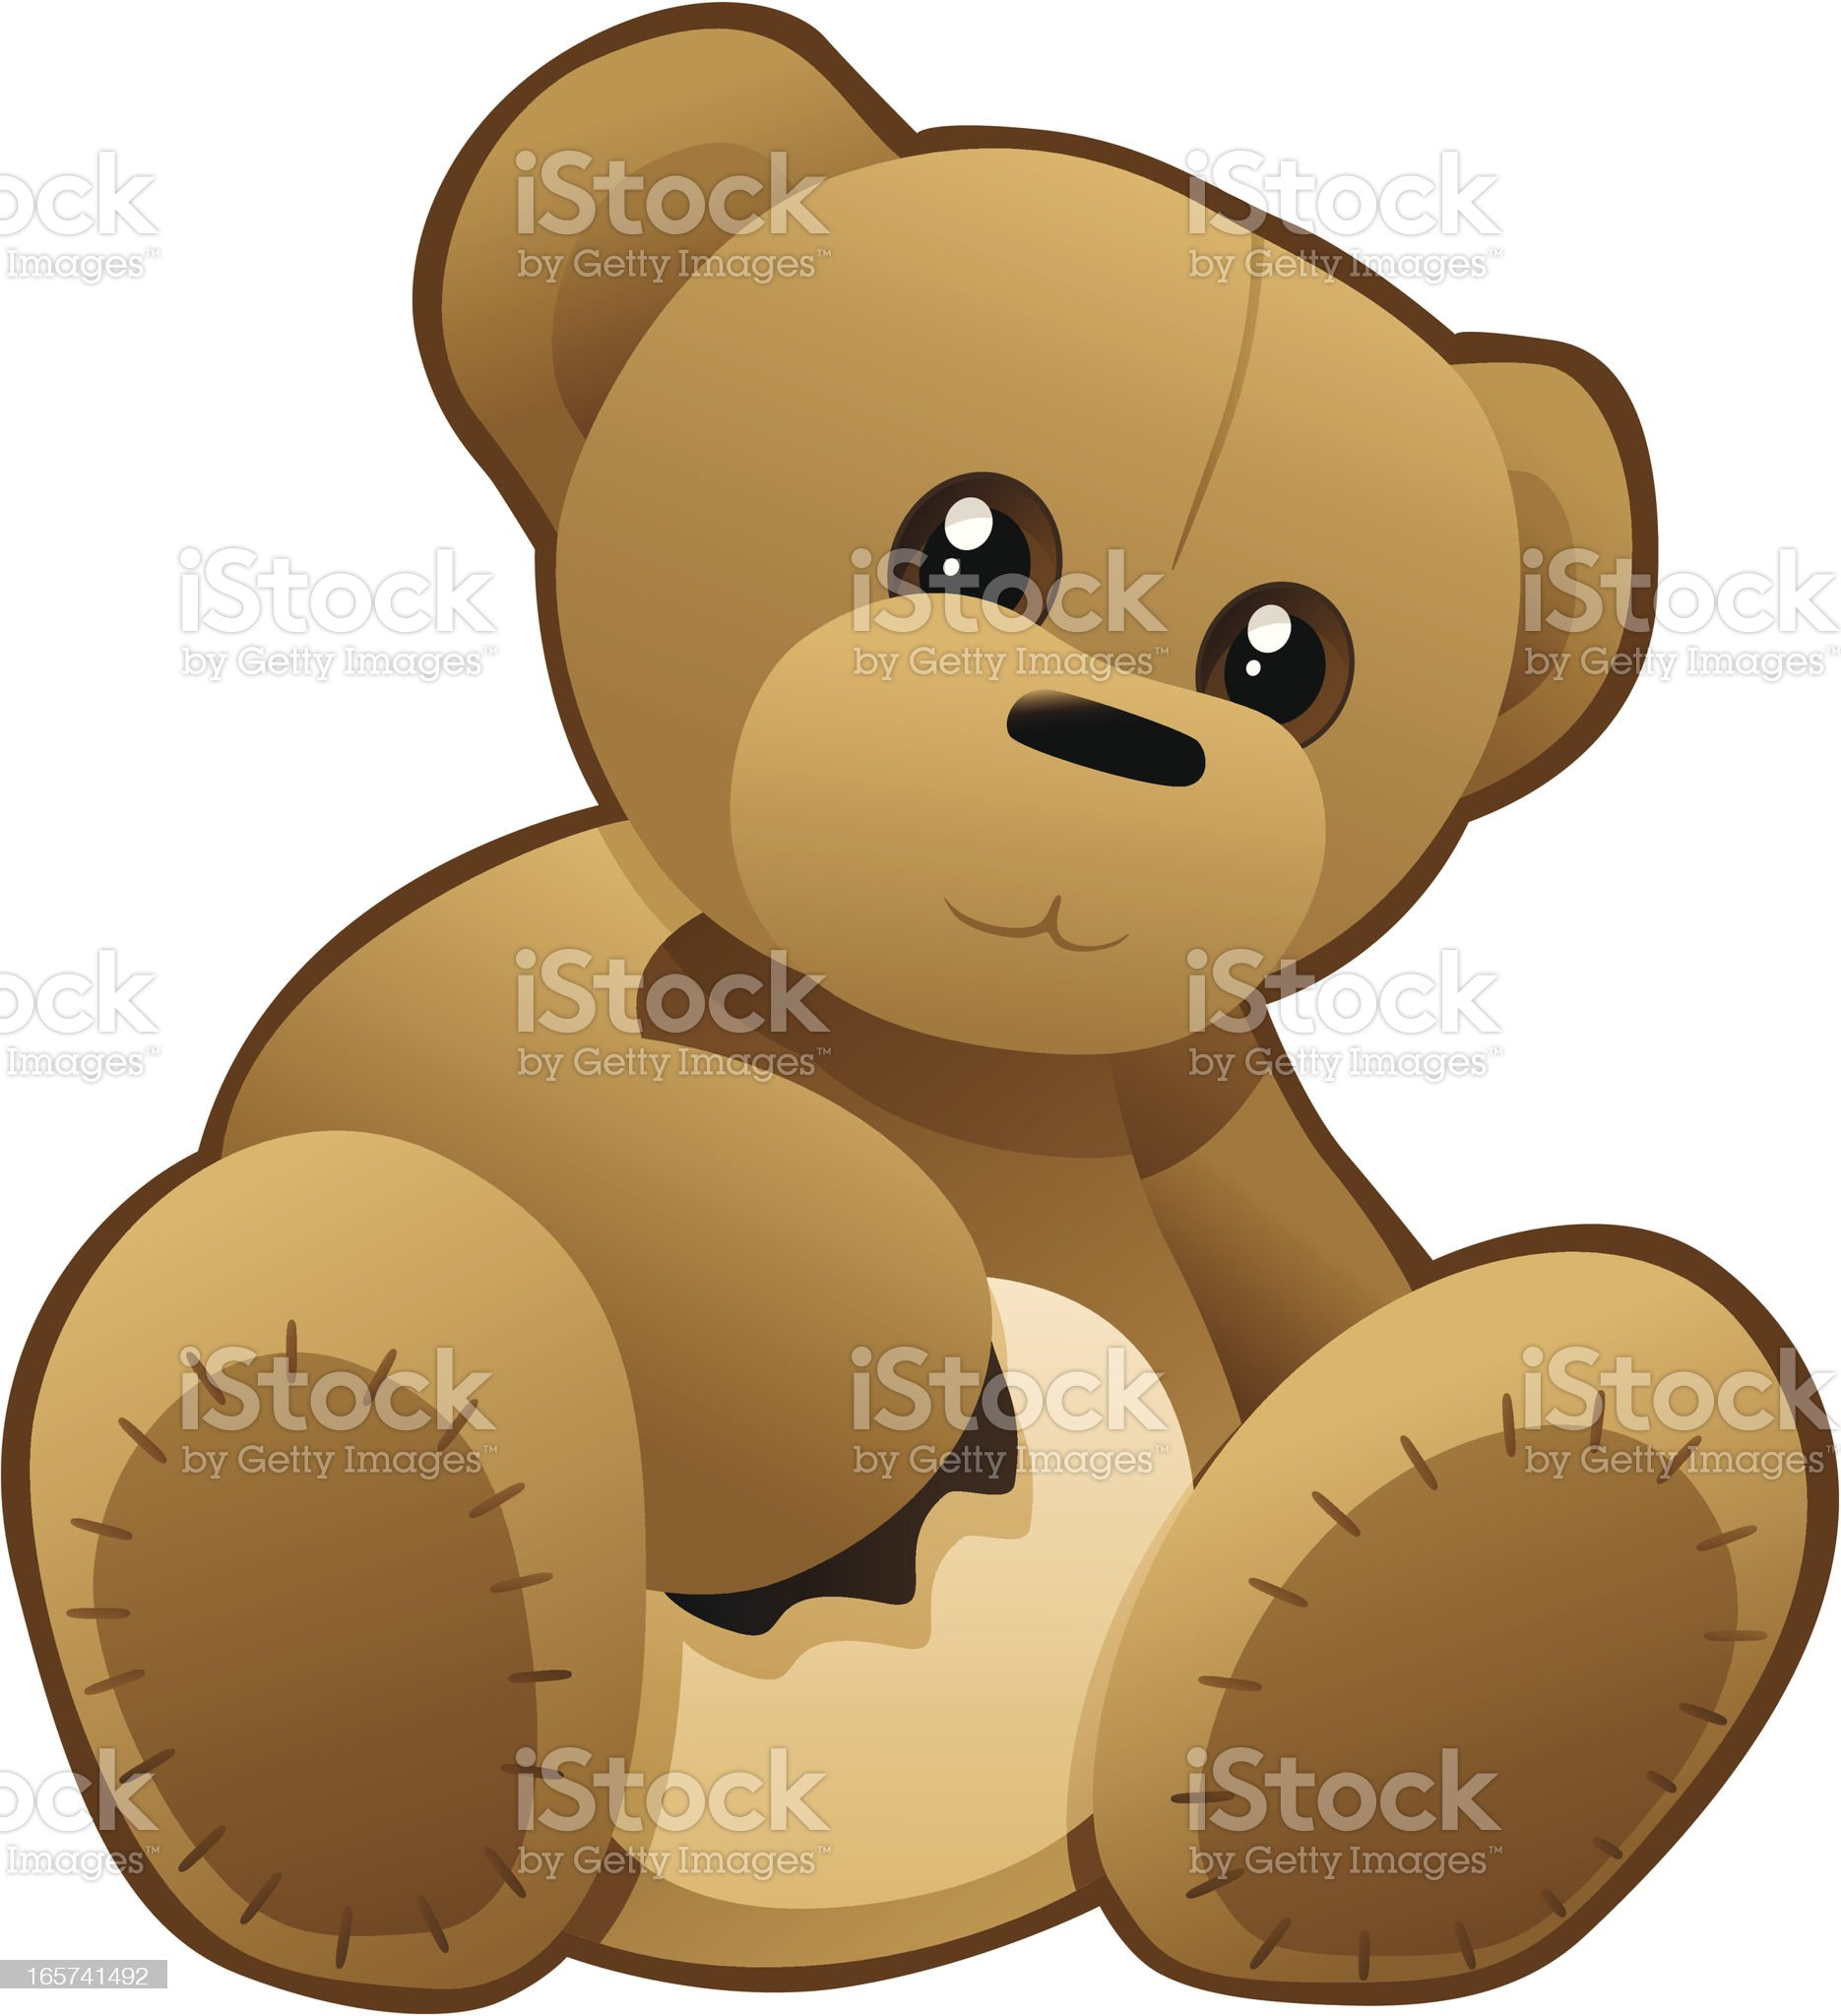 Buster The Bear royalty-free stock vector art